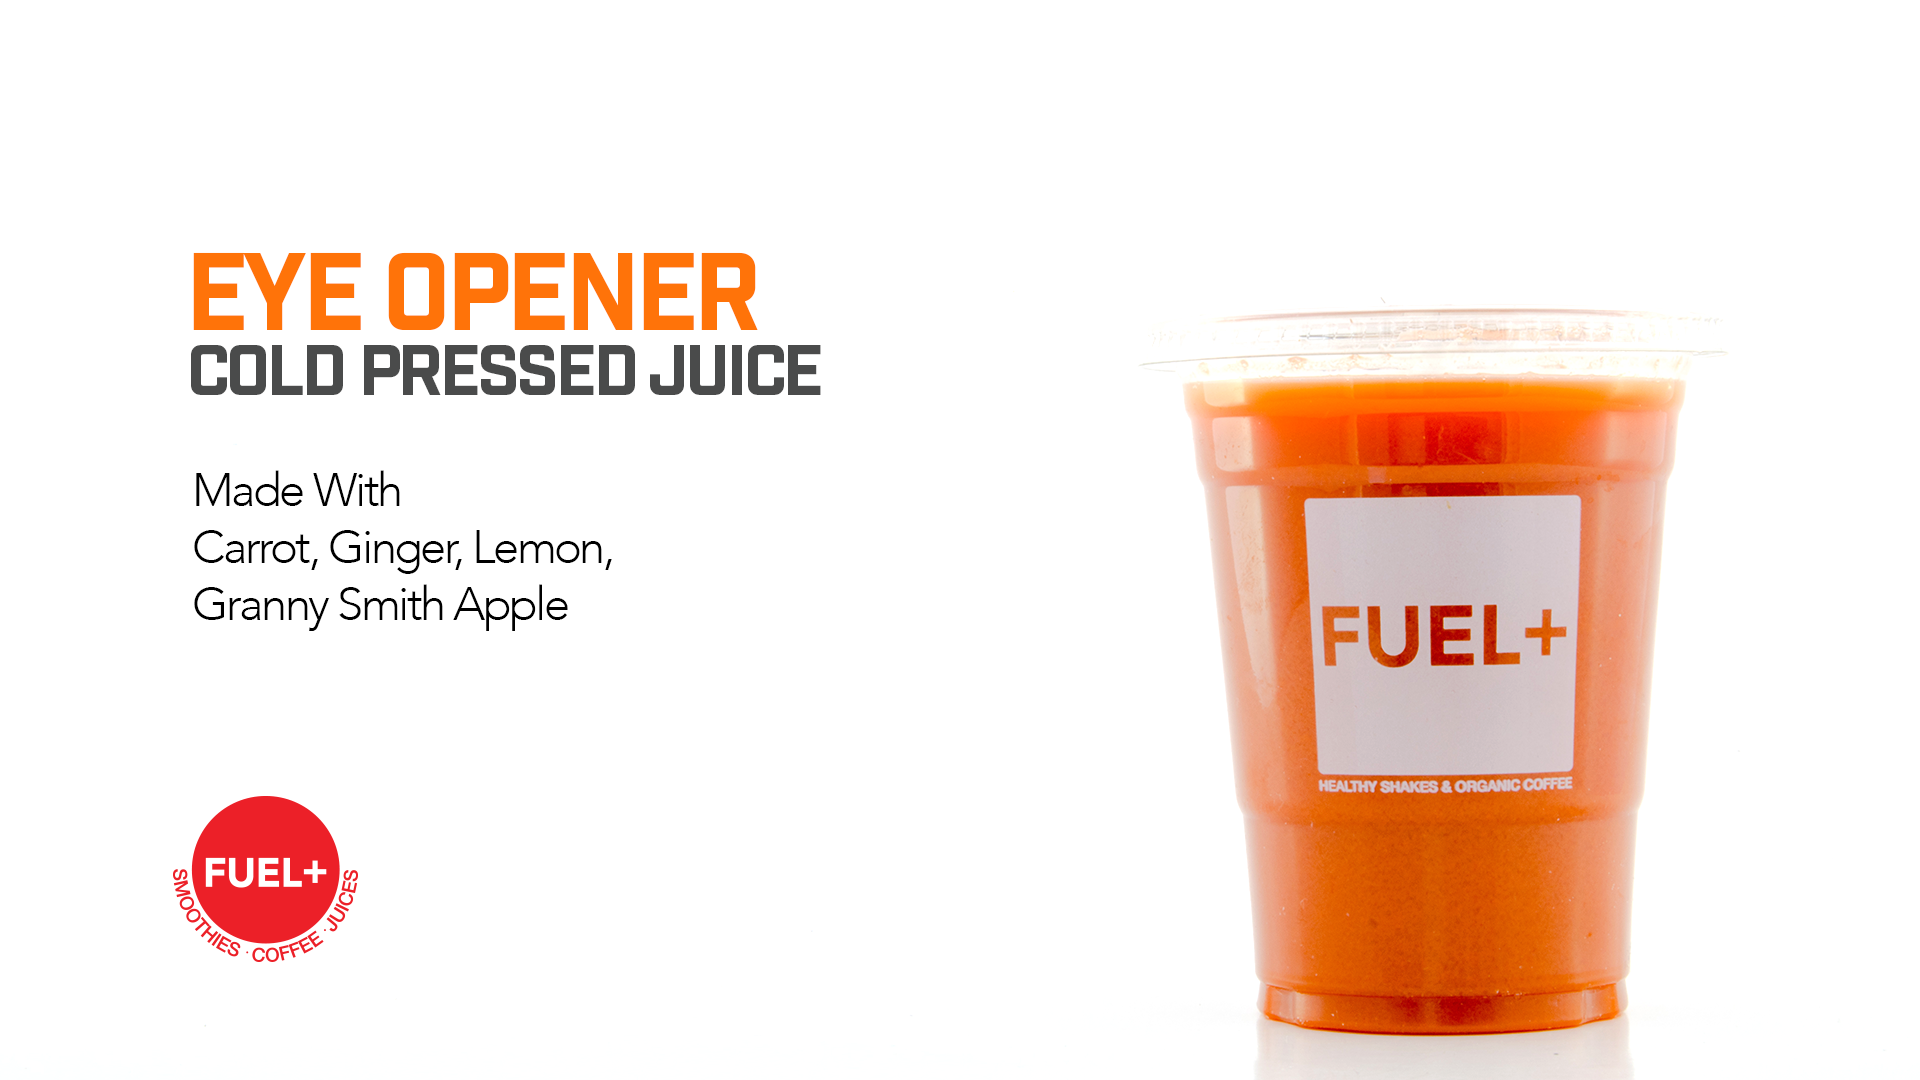 Eye Opener Cold Pressed Juice